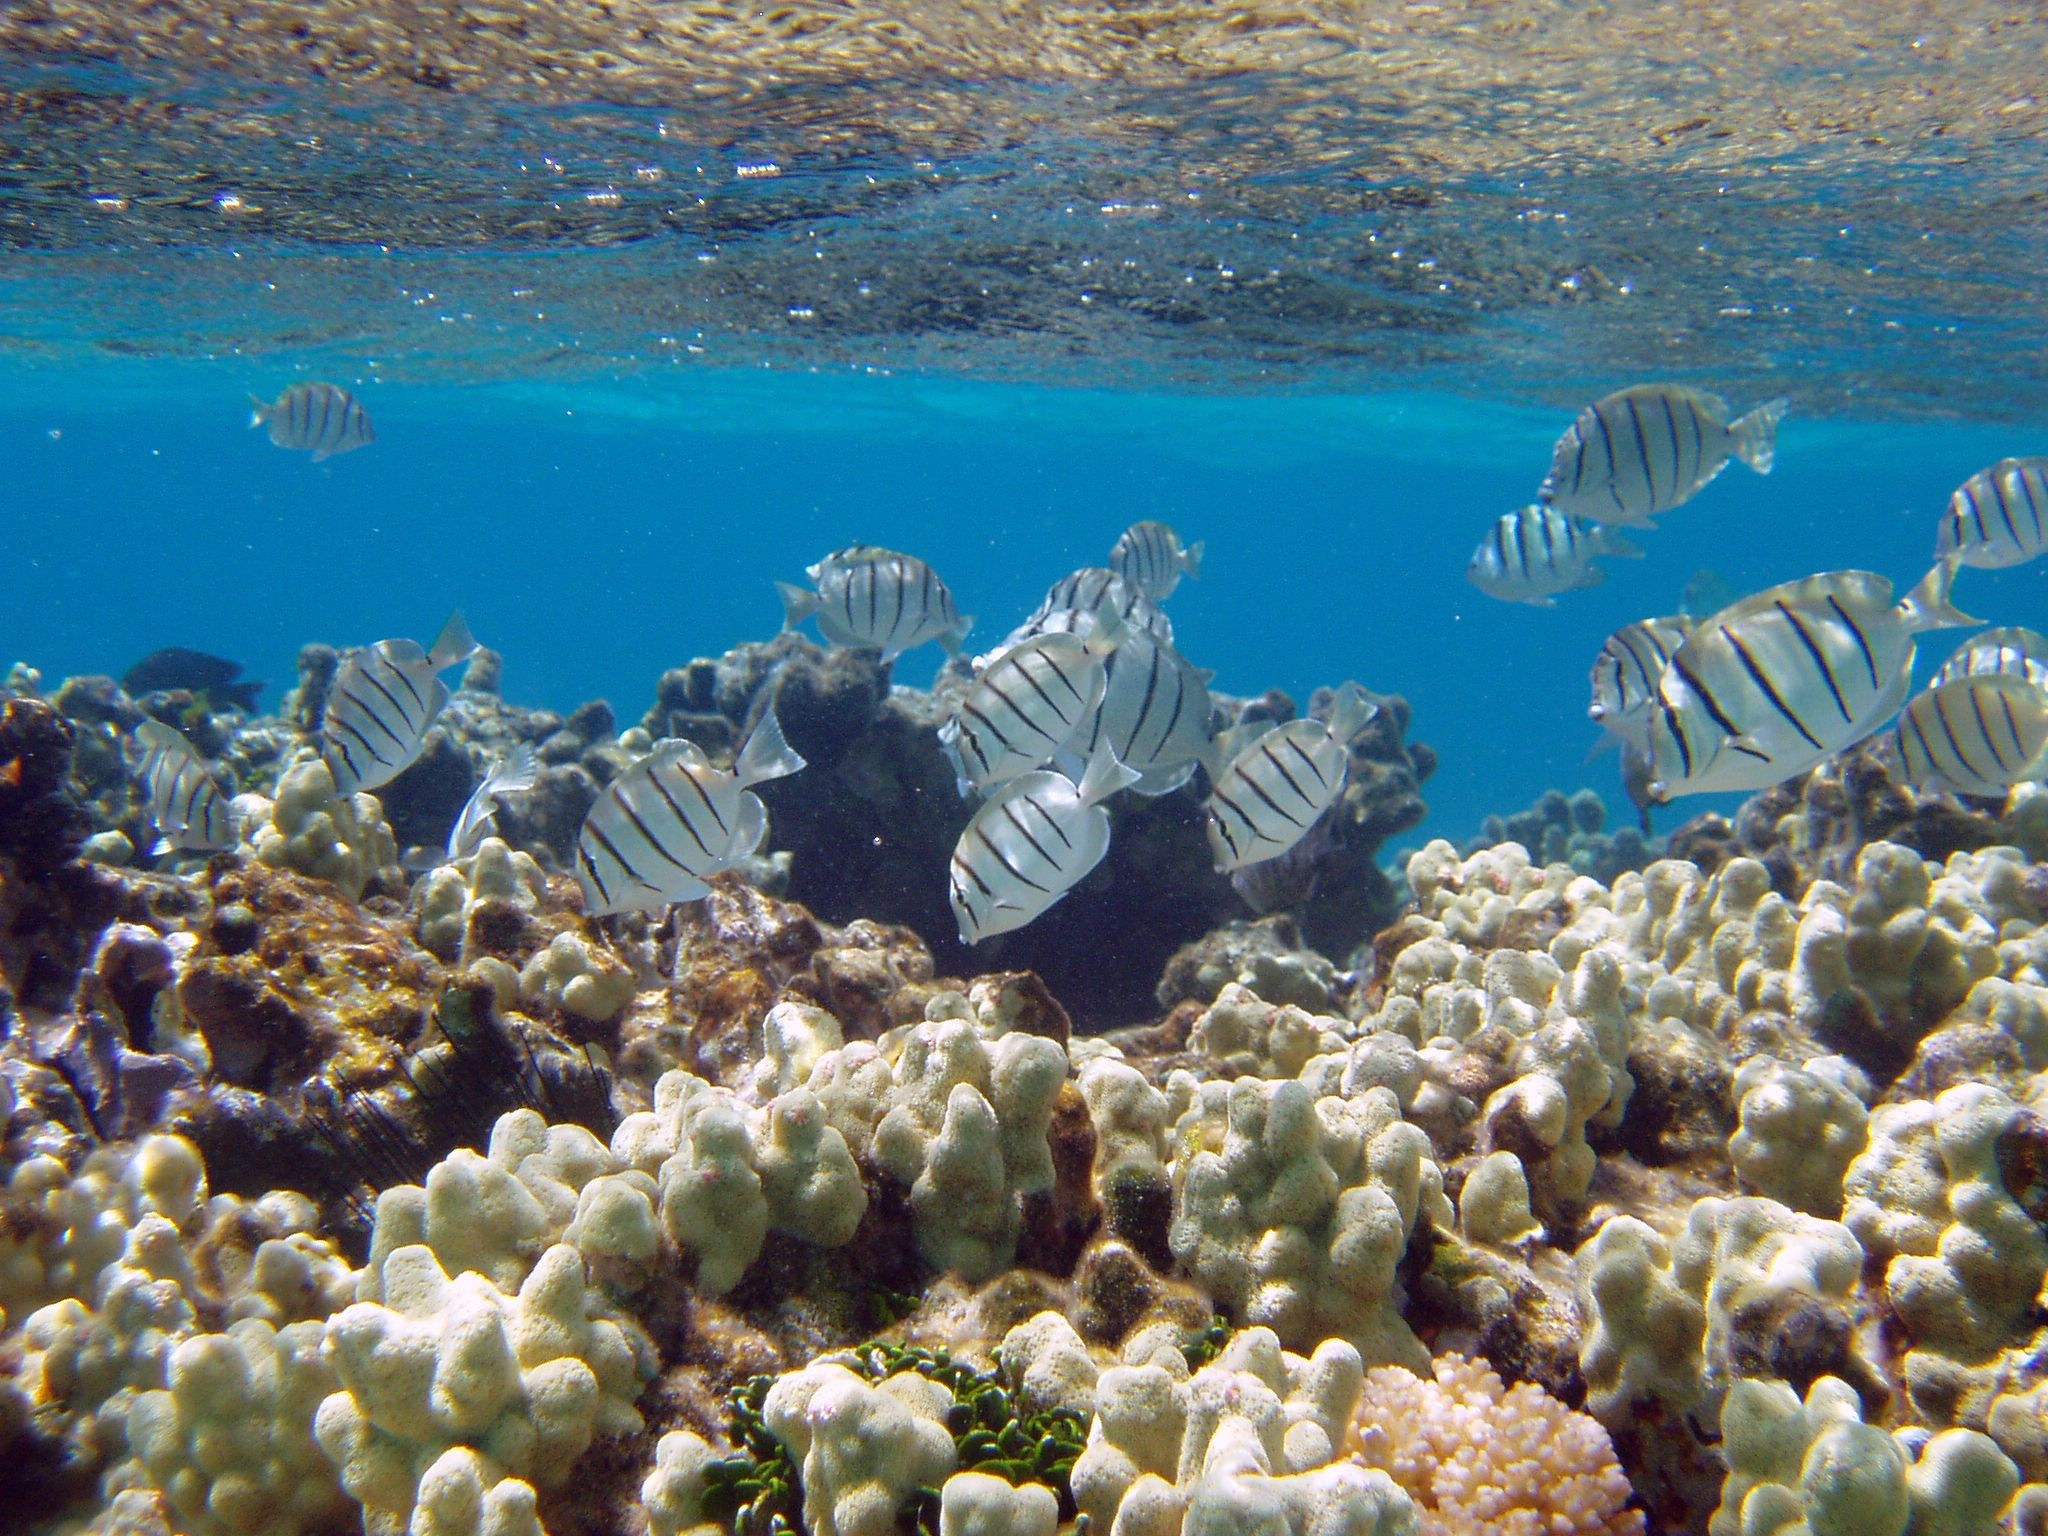 Manini or convict tangs amongst finger coral in shallow water.